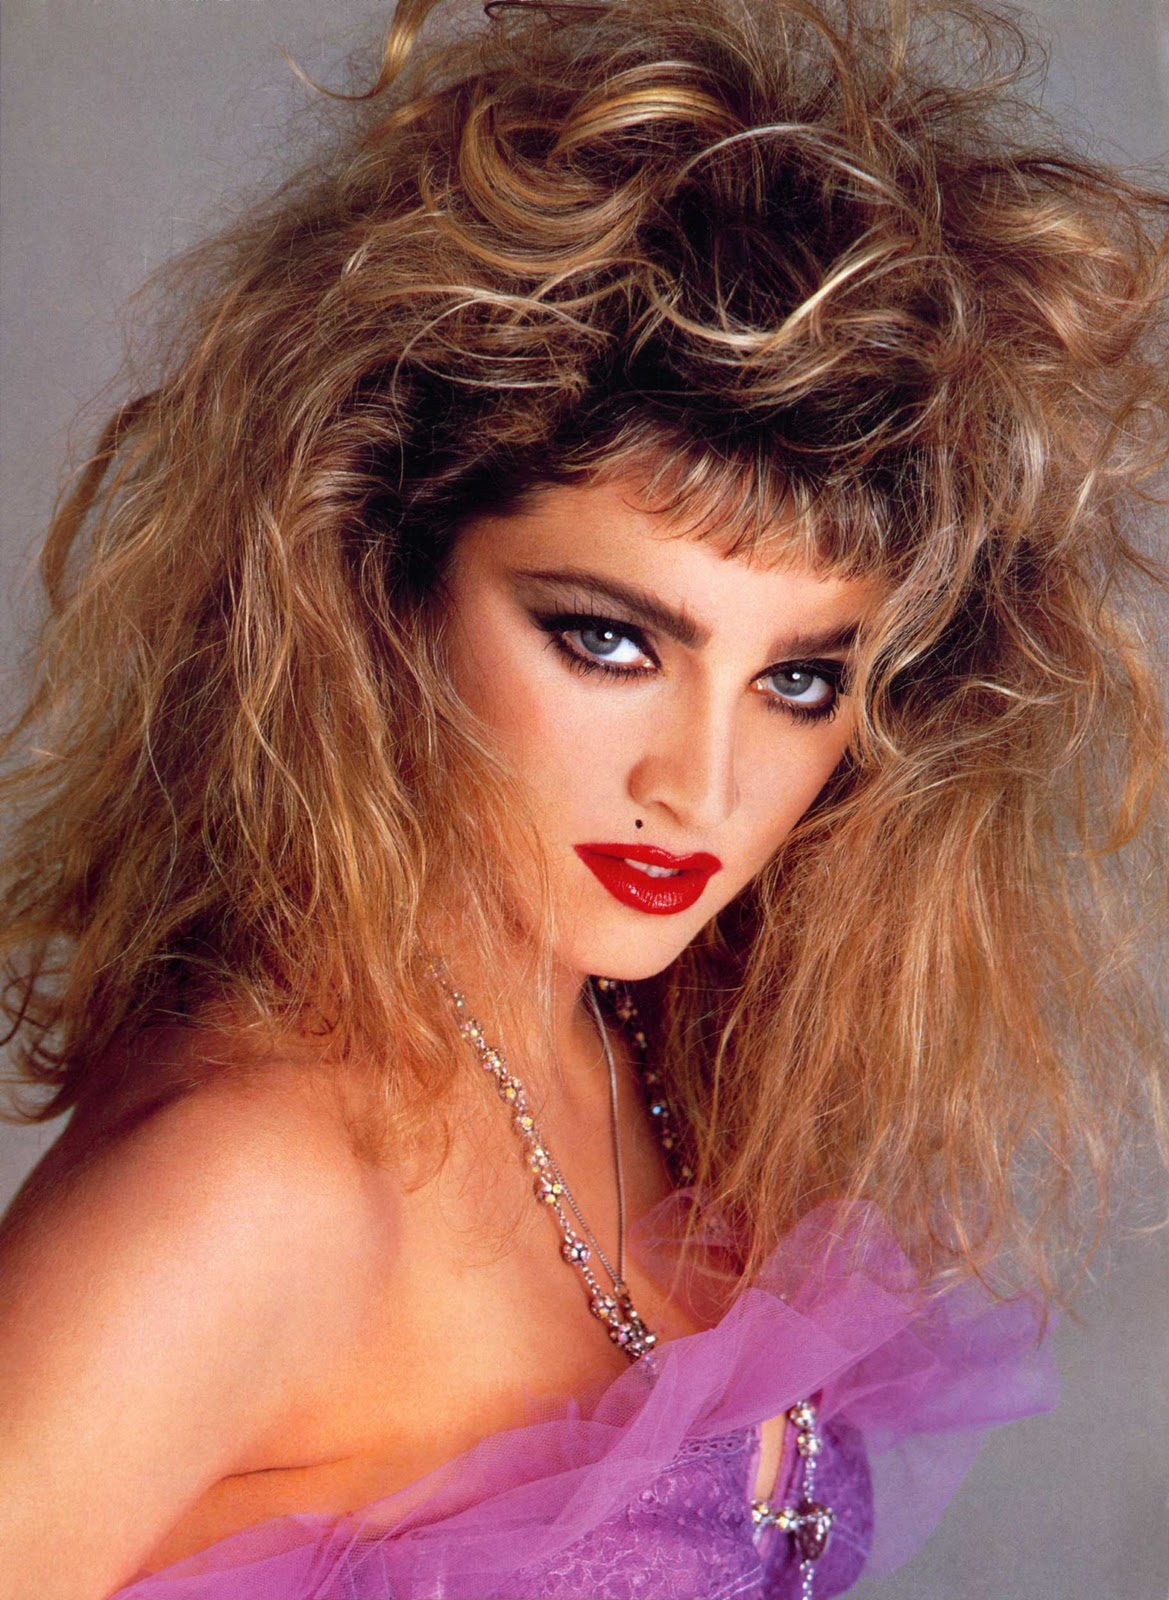 Madonna Hope this Lady doesnt need some extraintroduction. 1169 x 1600.Eighties Hairstyles And Makeup